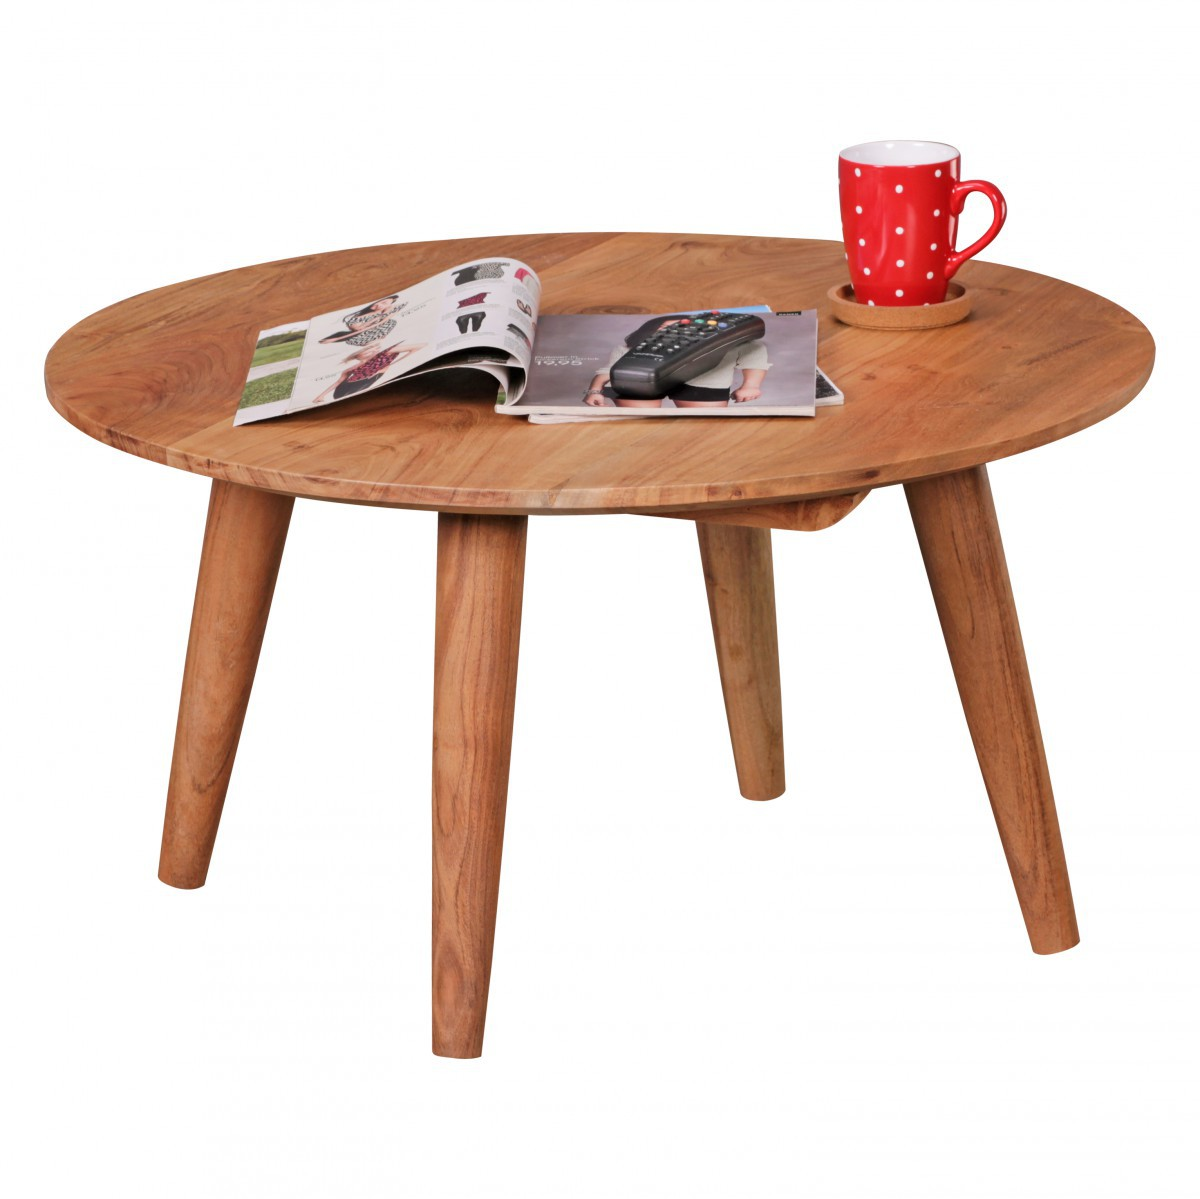 Finebuy table basse en bois massif acacia table basse ronde 75 x 40 cm ferme - Table basse ronde pivotante ...